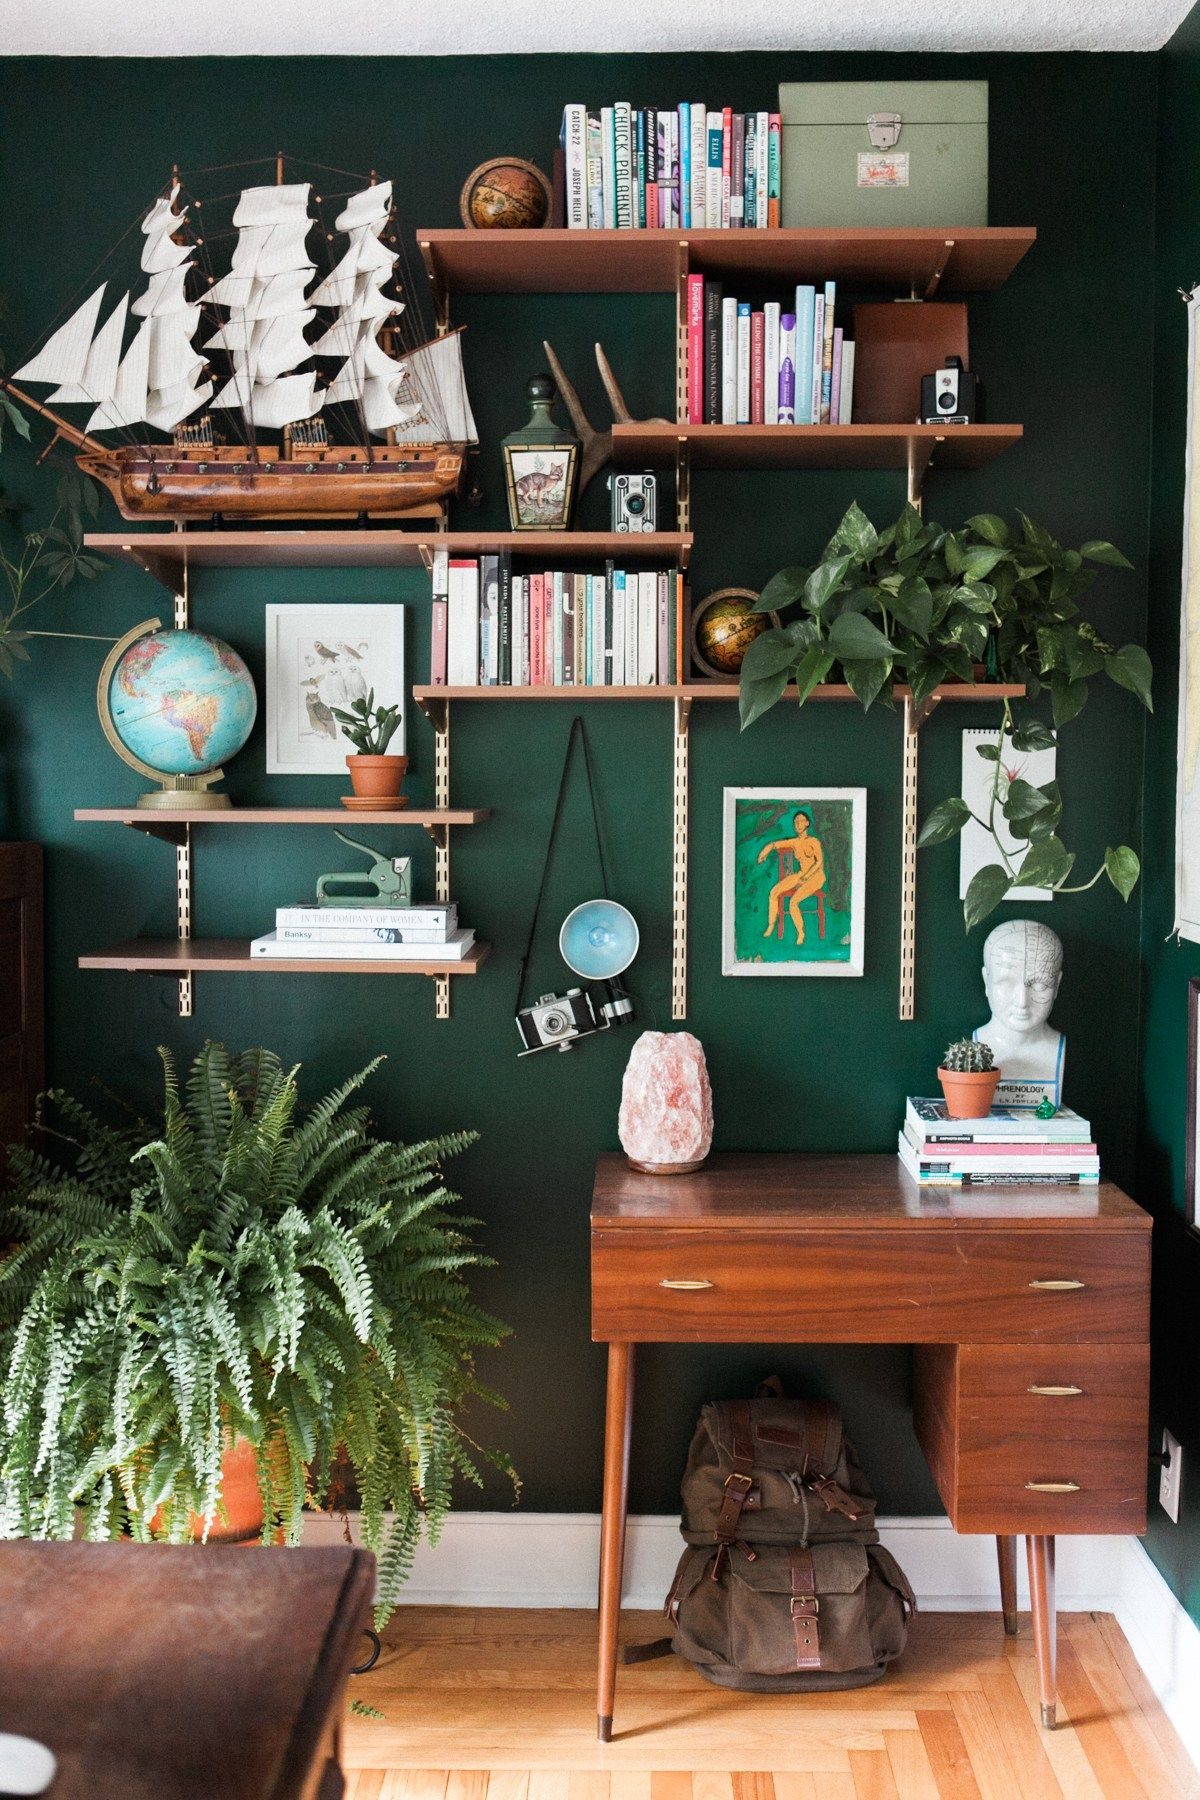 We Challenge You To Style Green Decor Ideas For A Week 5 green decor ideas We Challenge You To Style Green Decor Ideas For A Week We Challenge You To Style Green Decor Ideas For A Week 5